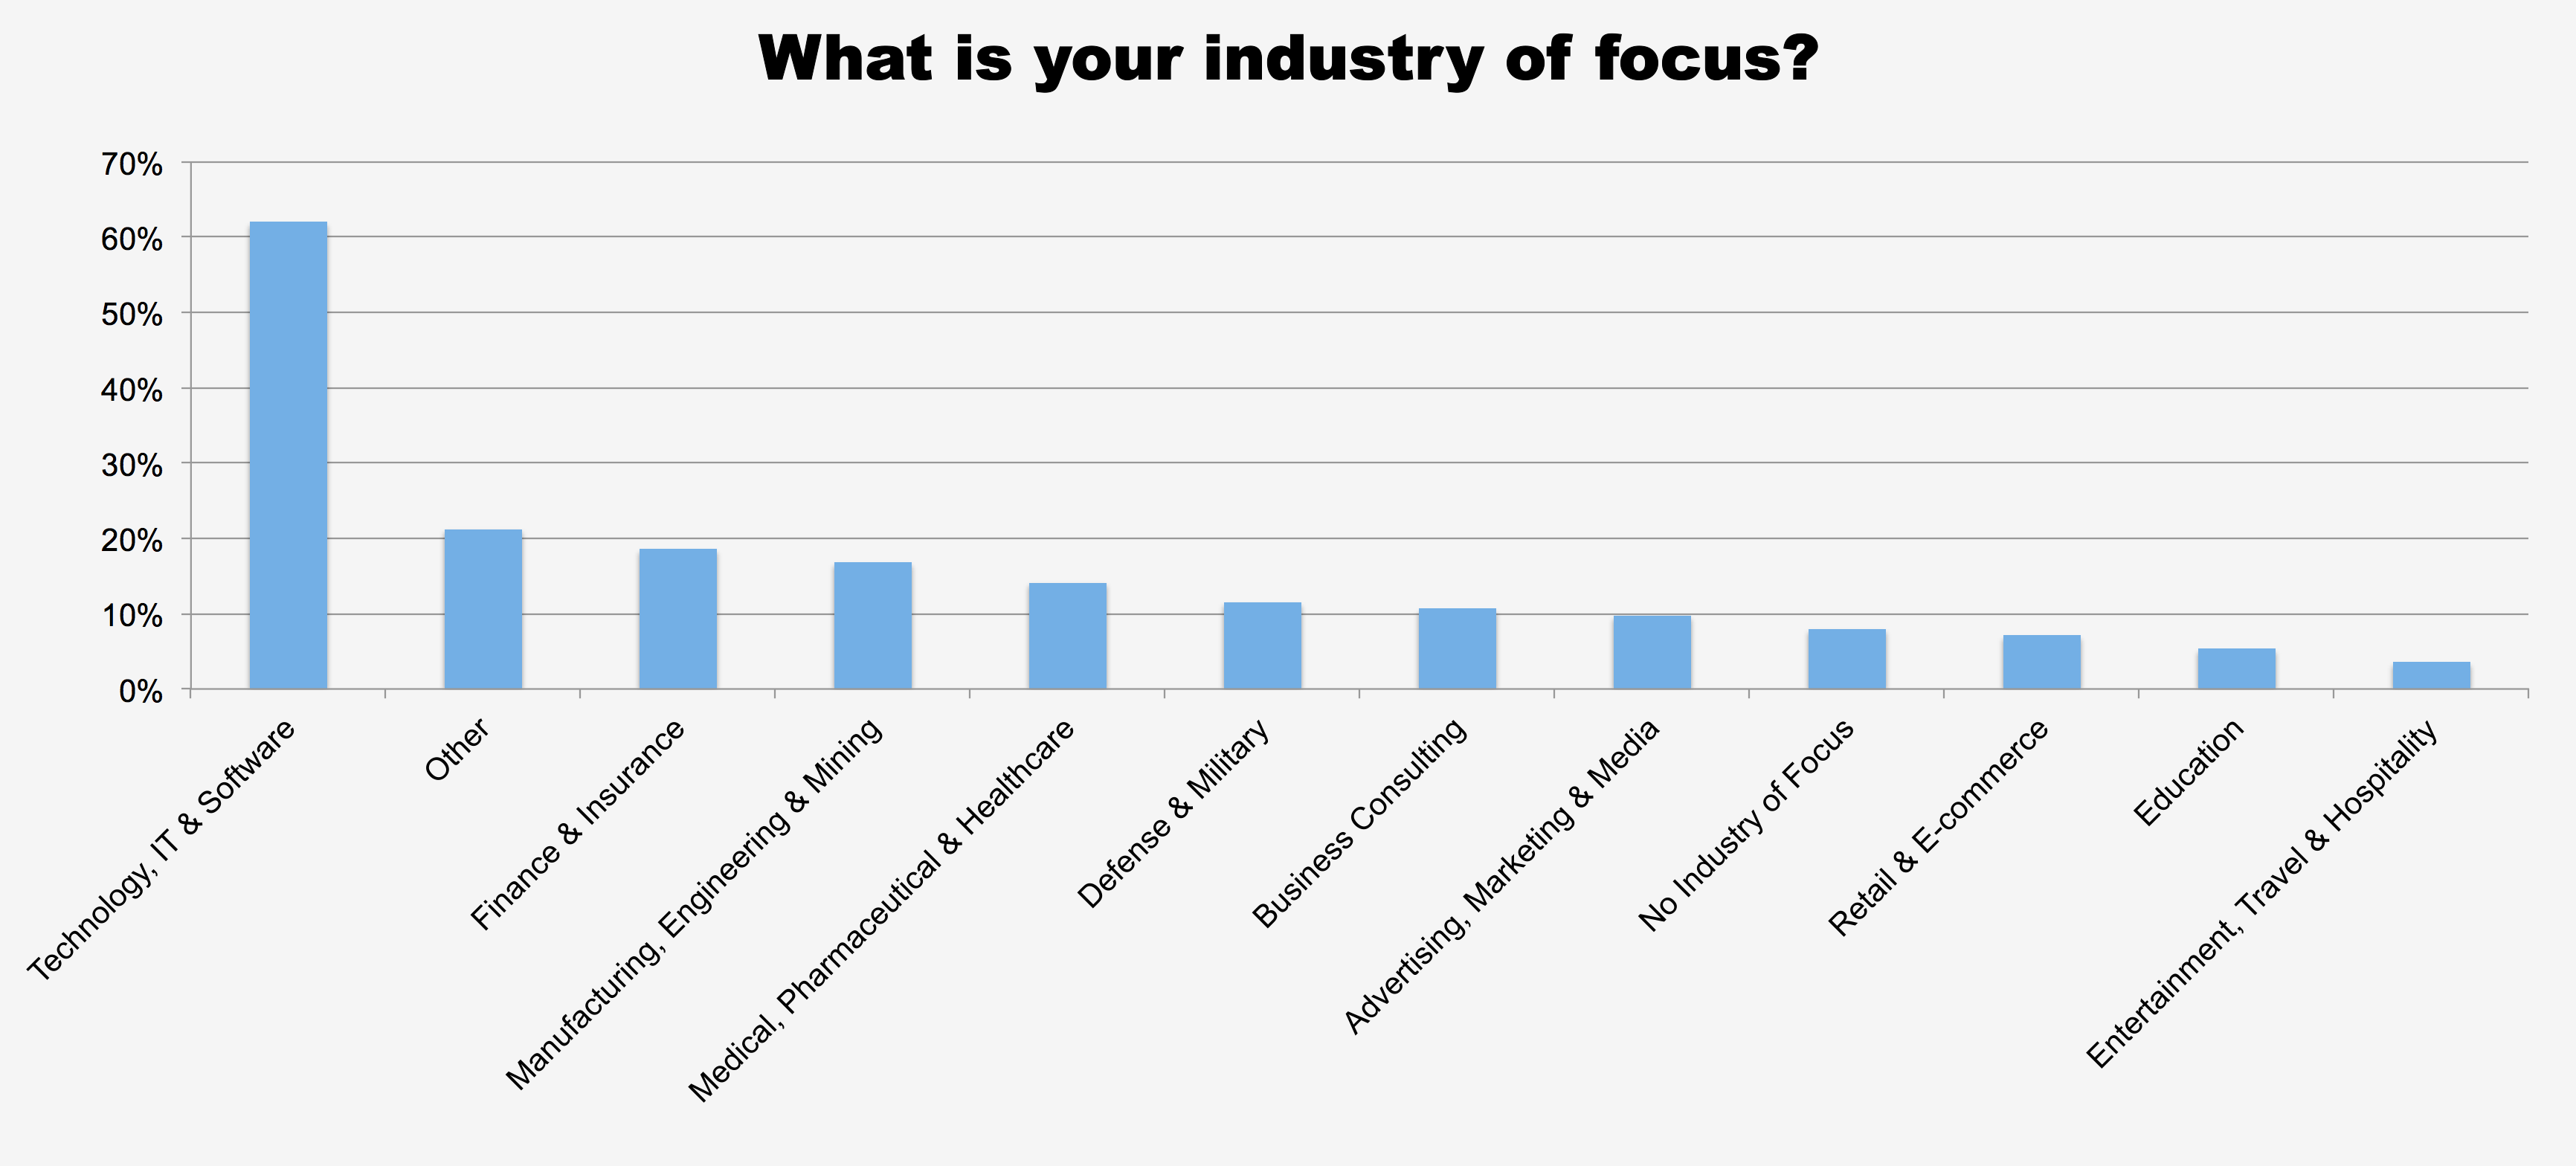 What is your industry of focus?